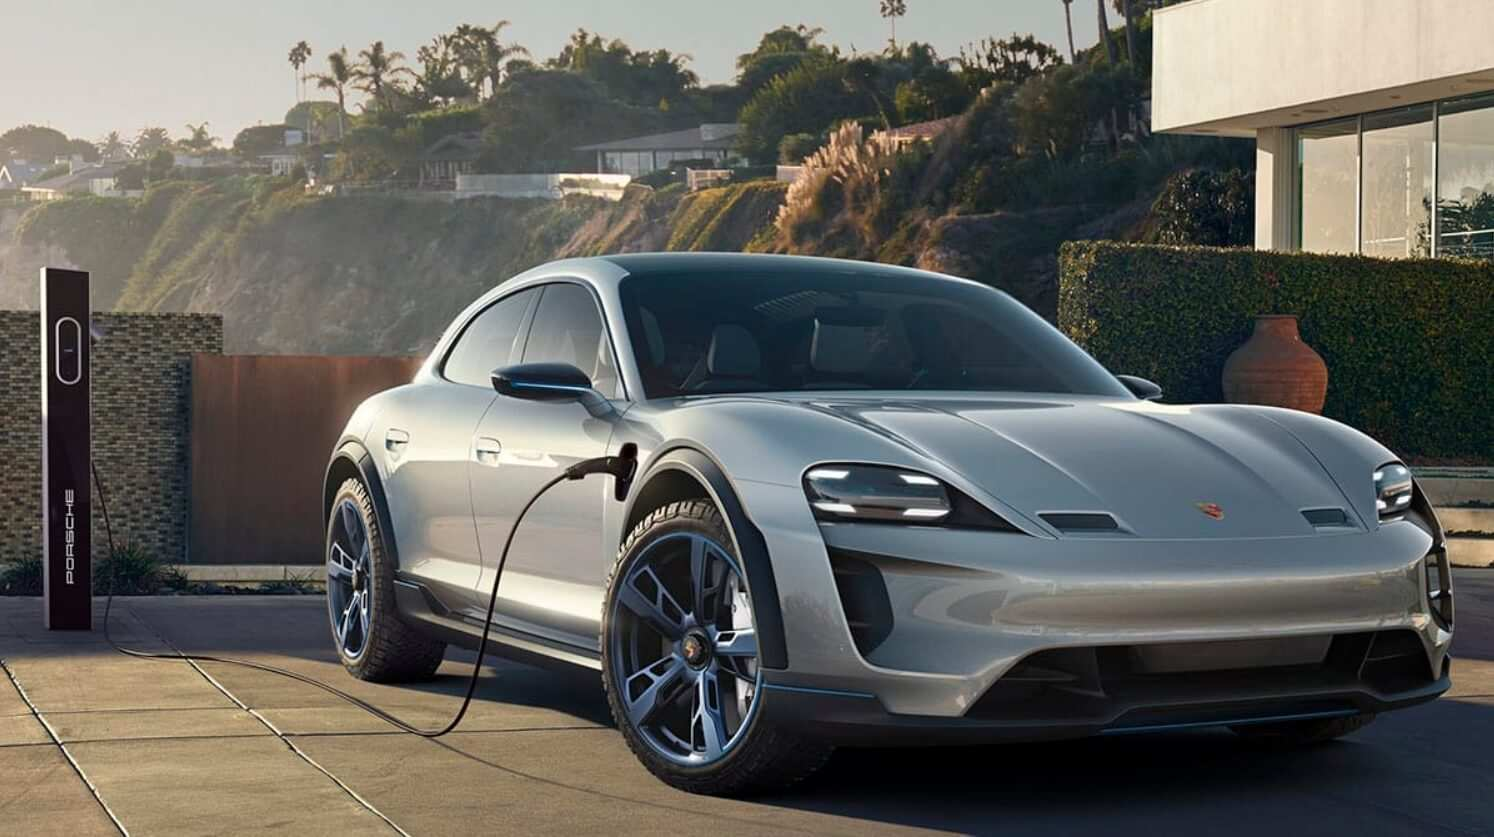 81 All New 2019 Porsche Electric Car Images for 2019 Porsche Electric Car